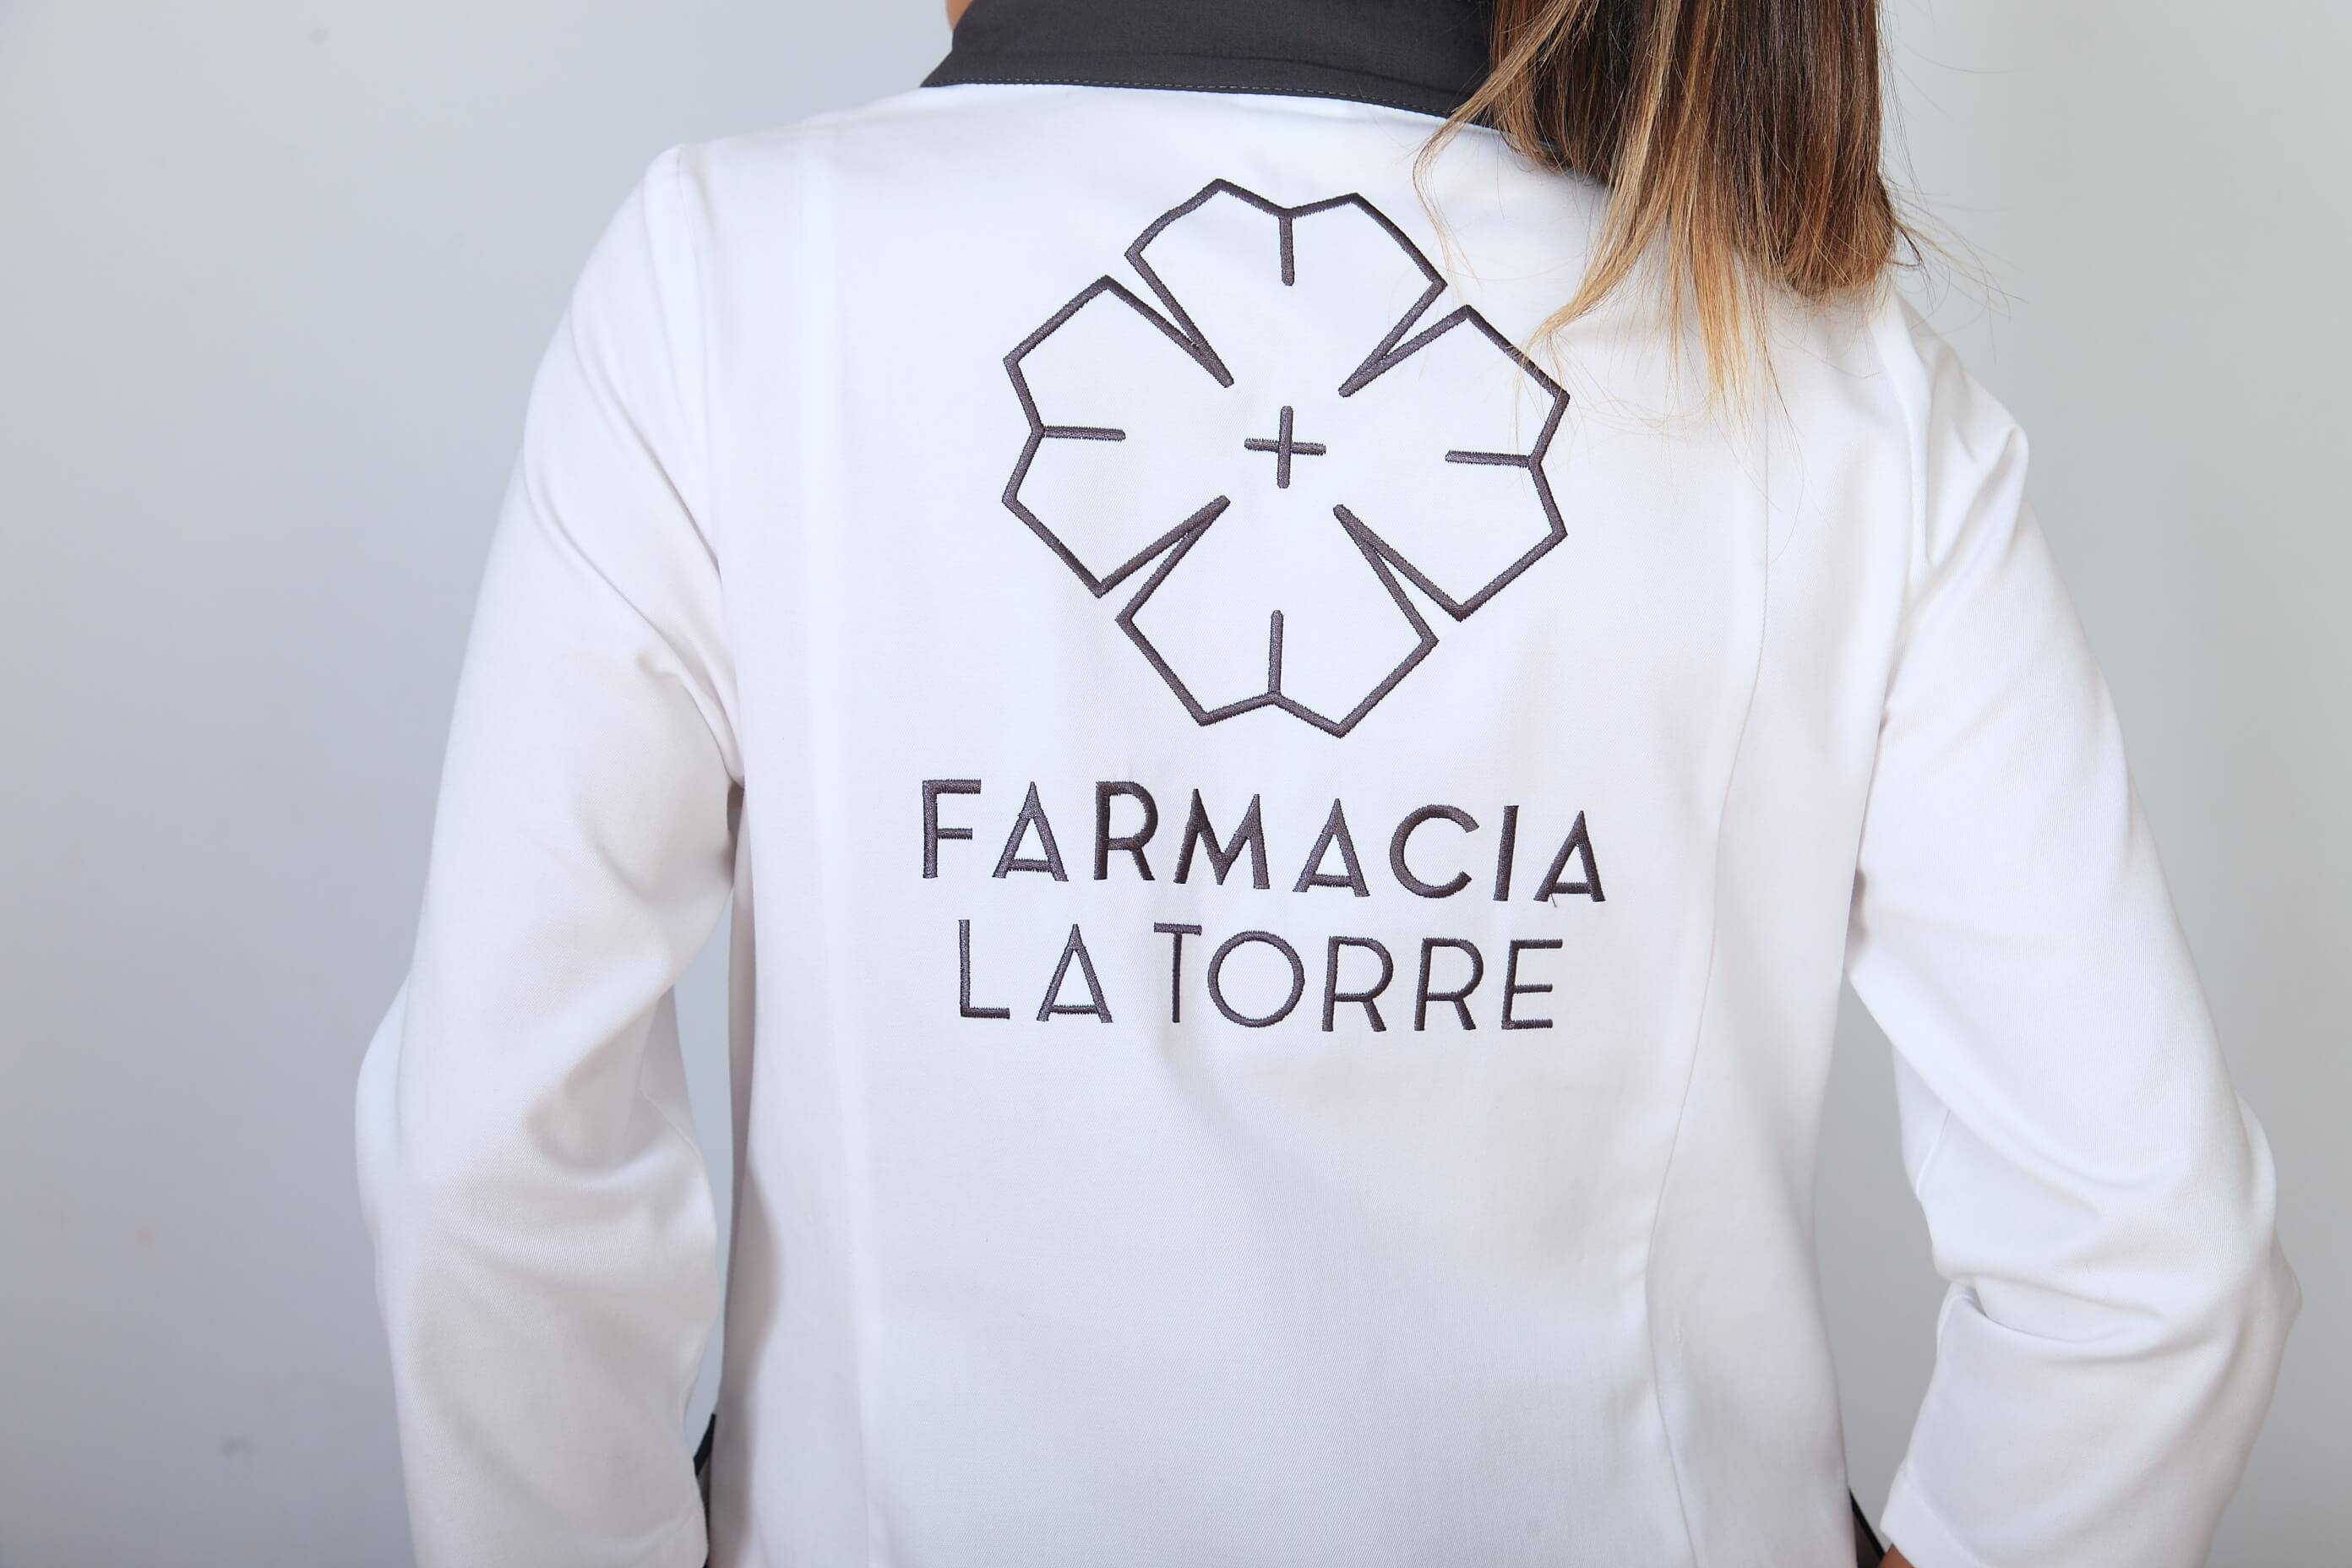 Bordado uniforme para Farmacia La Torre